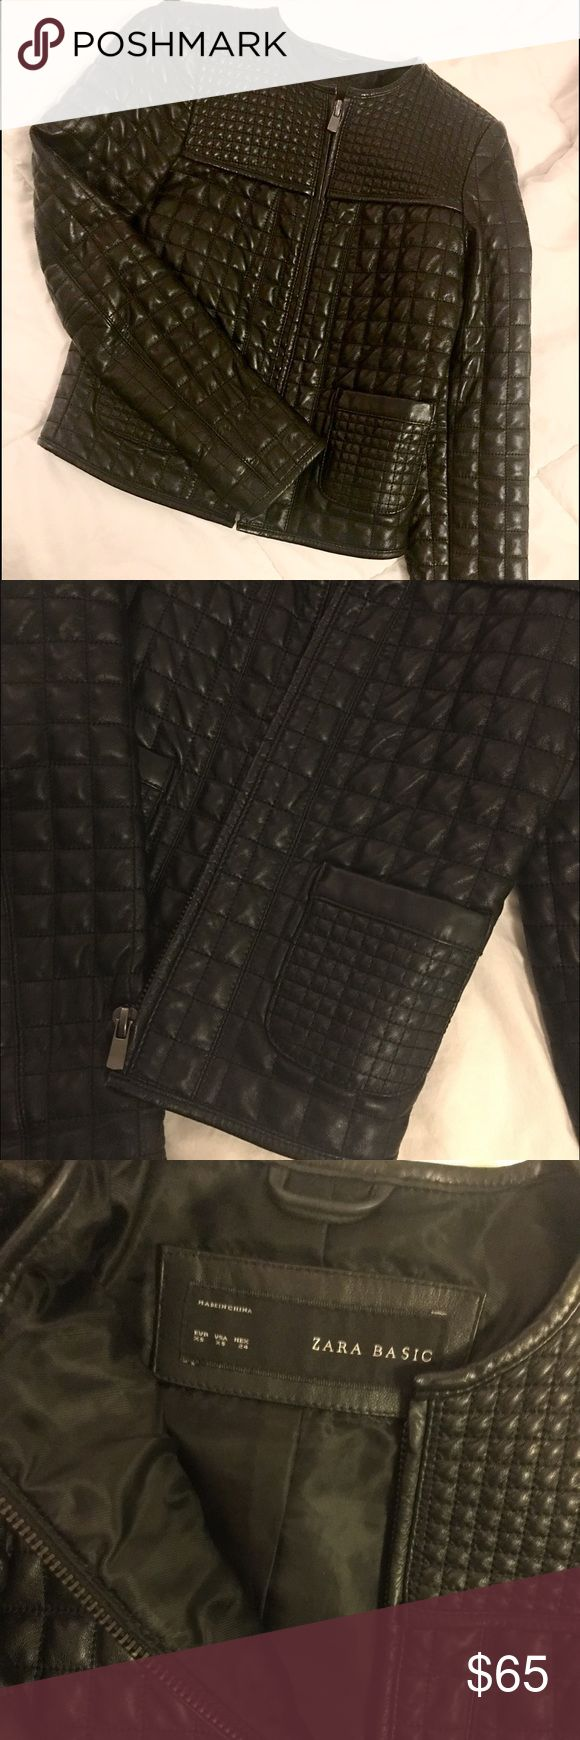 Zara leather jacket Adorable Zara black leather jacket for sale! Size XS, worn once, in perfect condition. In the photos, the jacket appears to be shiny / patent leather, however, the jacket is not shiny. Let me know if you have any questions! ✨ Zara Jackets & Coats